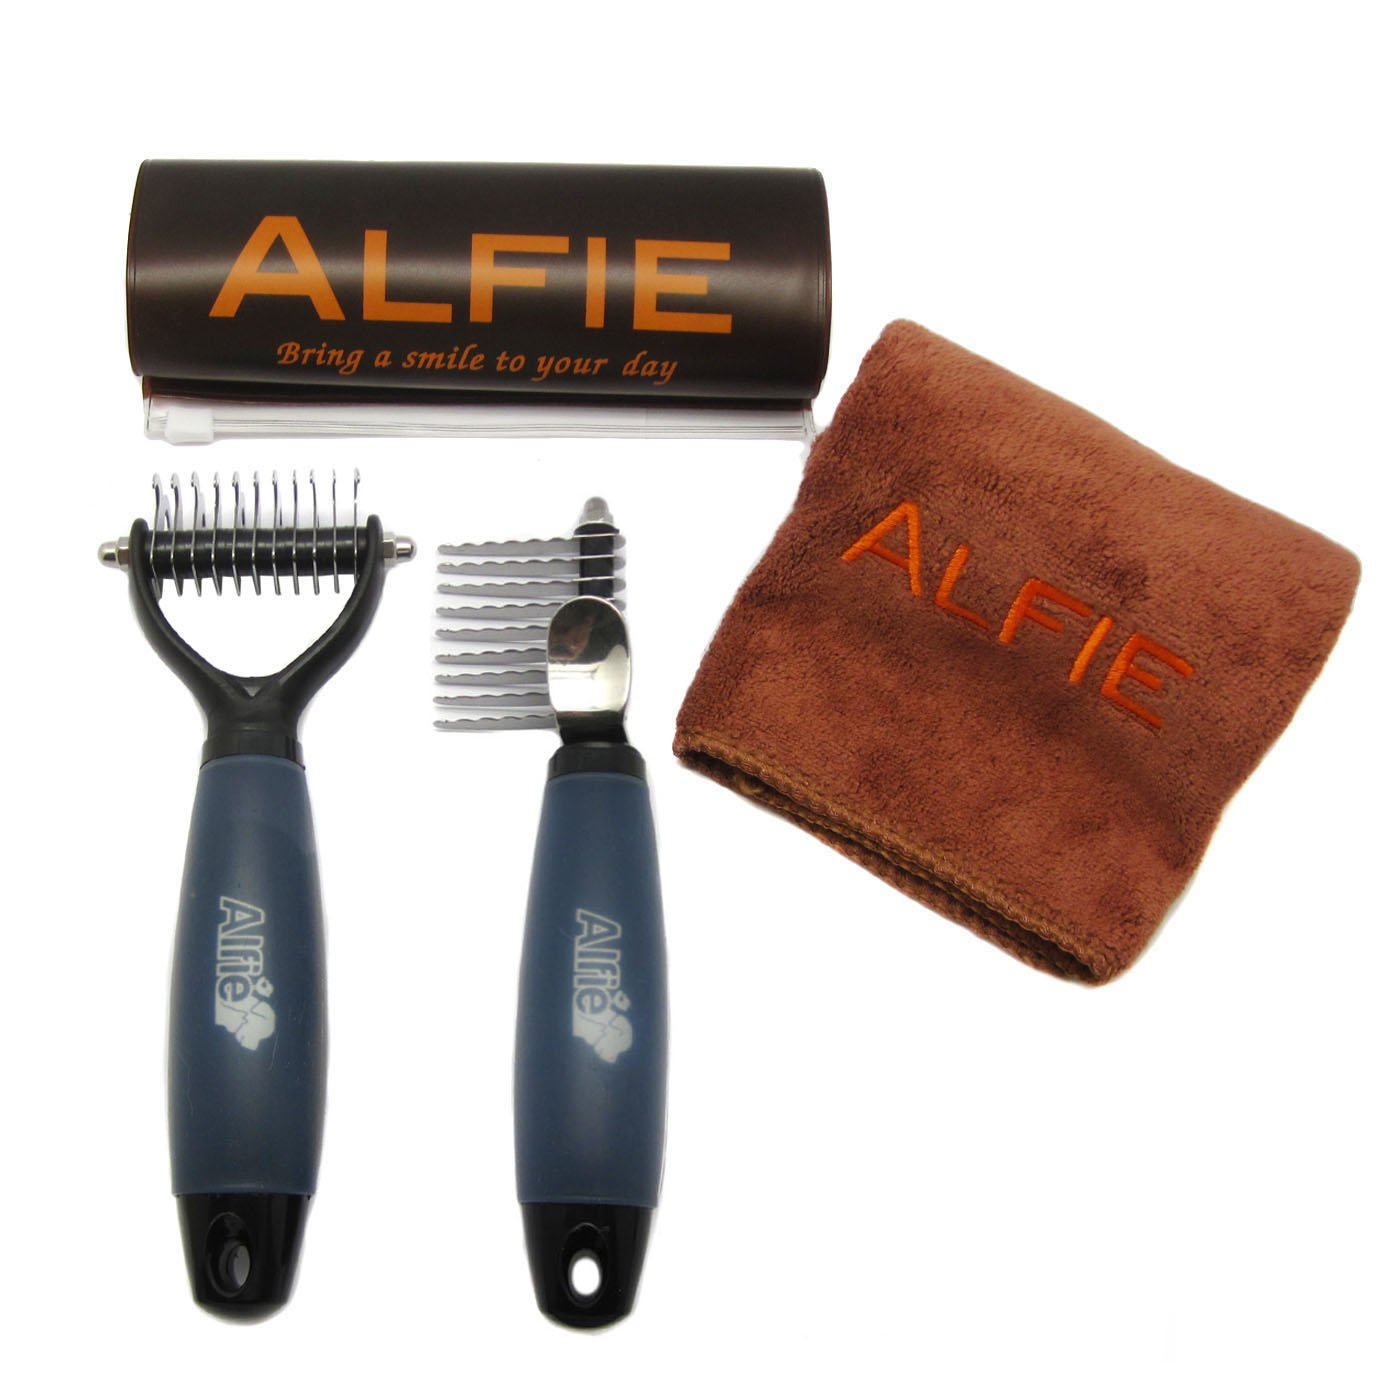 Alfie Pet by Petoga Couture - Devin 2-piece Home Grooming Set - Demat Comb and Mat Breaker (Specifically for Dematting)